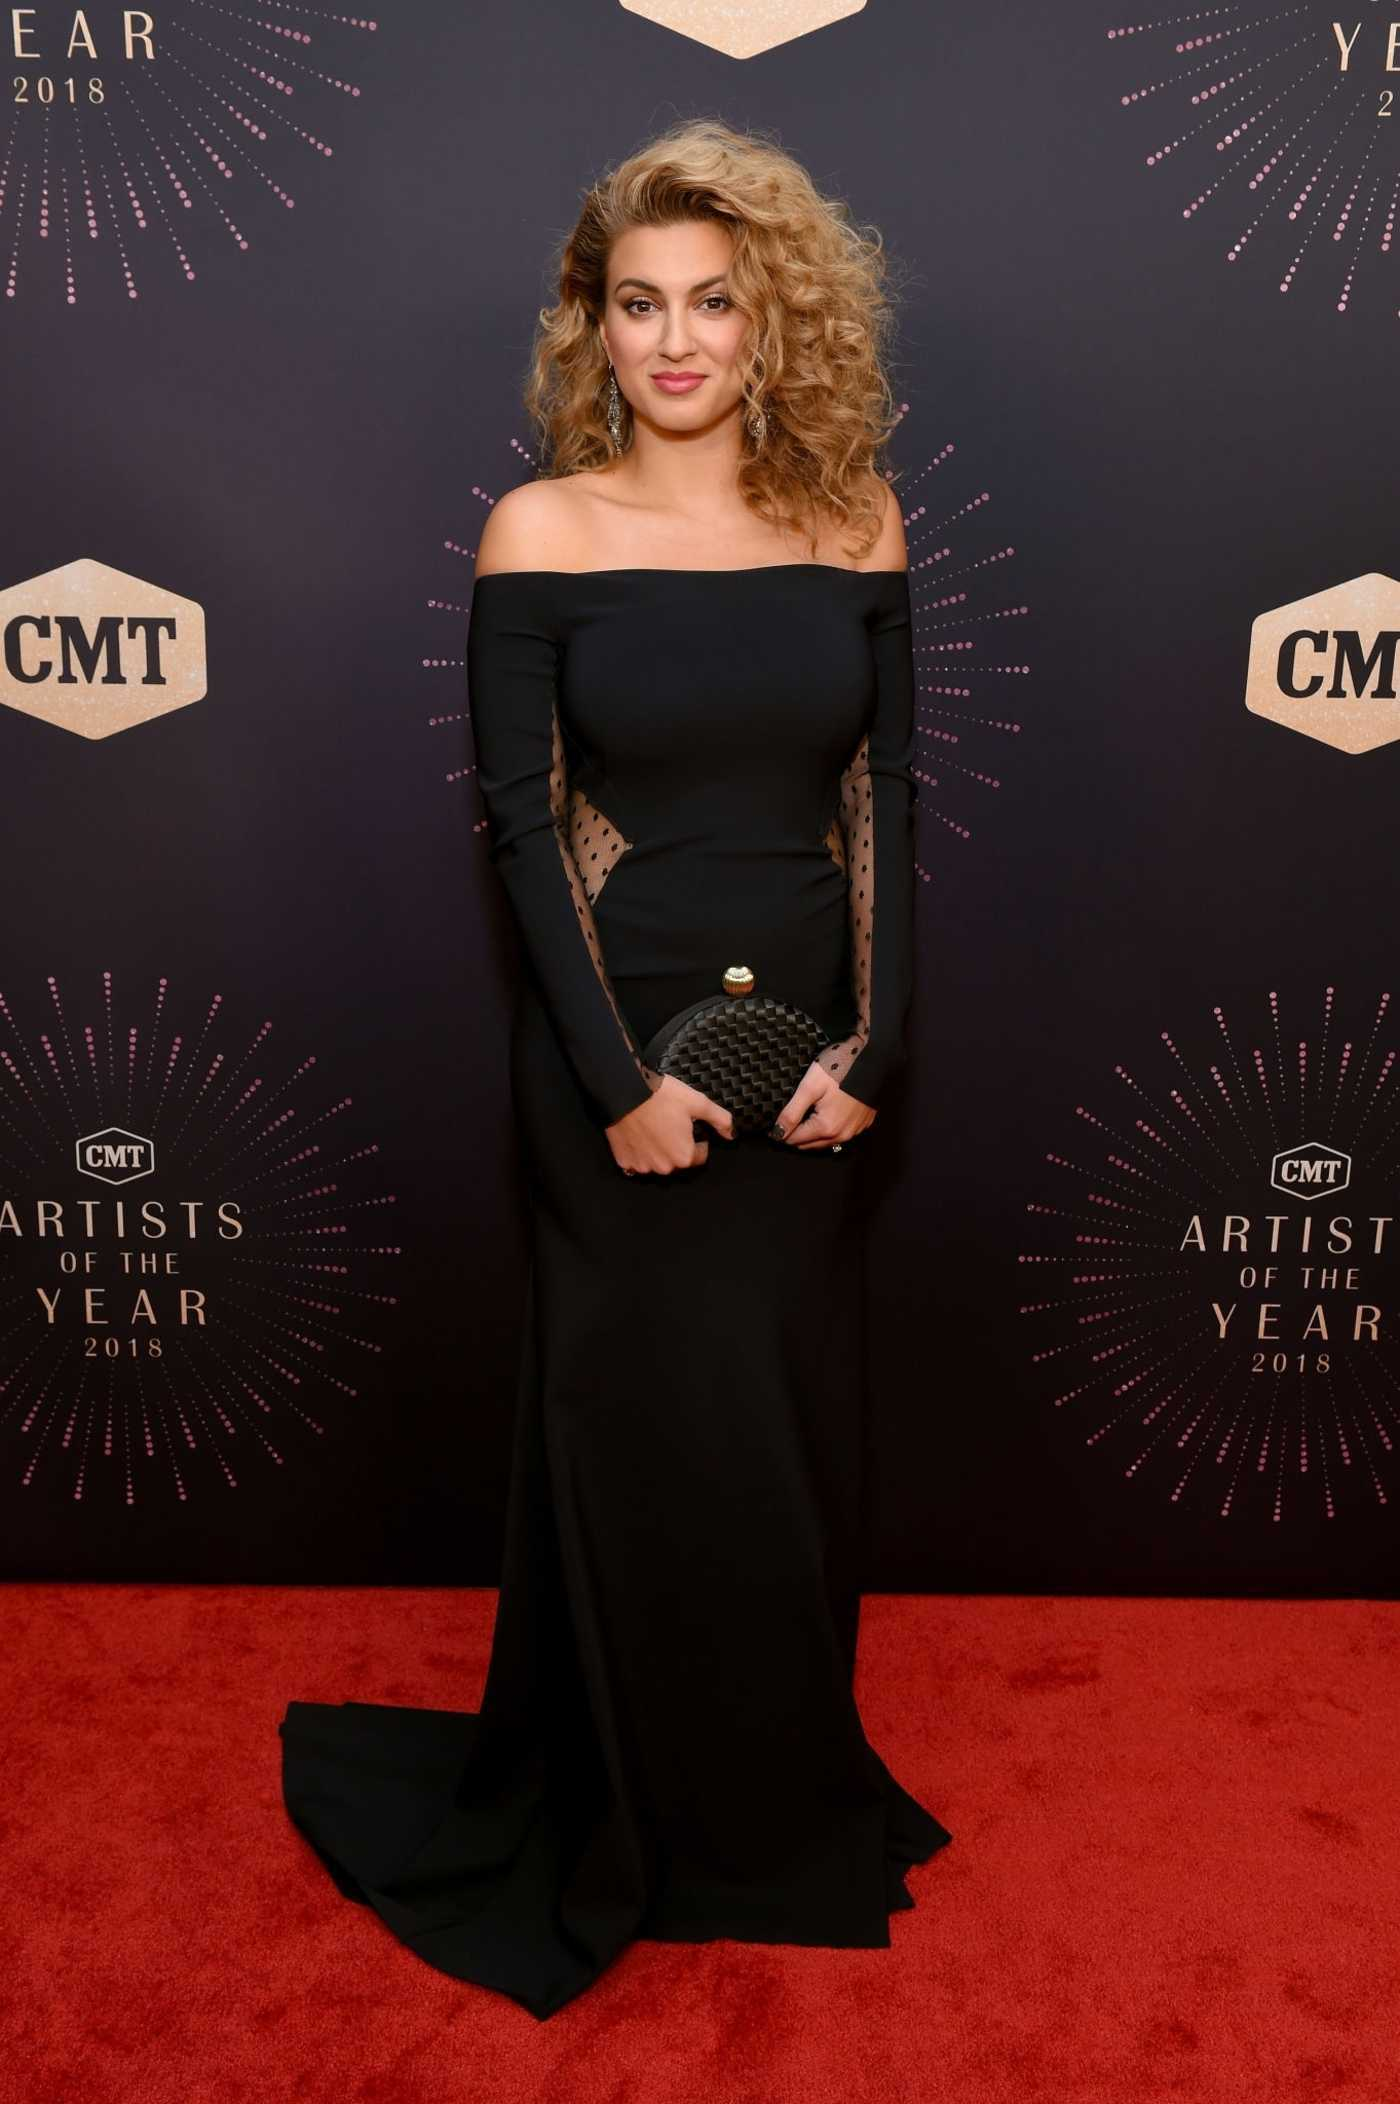 Tori Kelly Attends 2018 CMT Artists of The Year at Schermerhorn Symphony Center in Nashville 10/17/2018